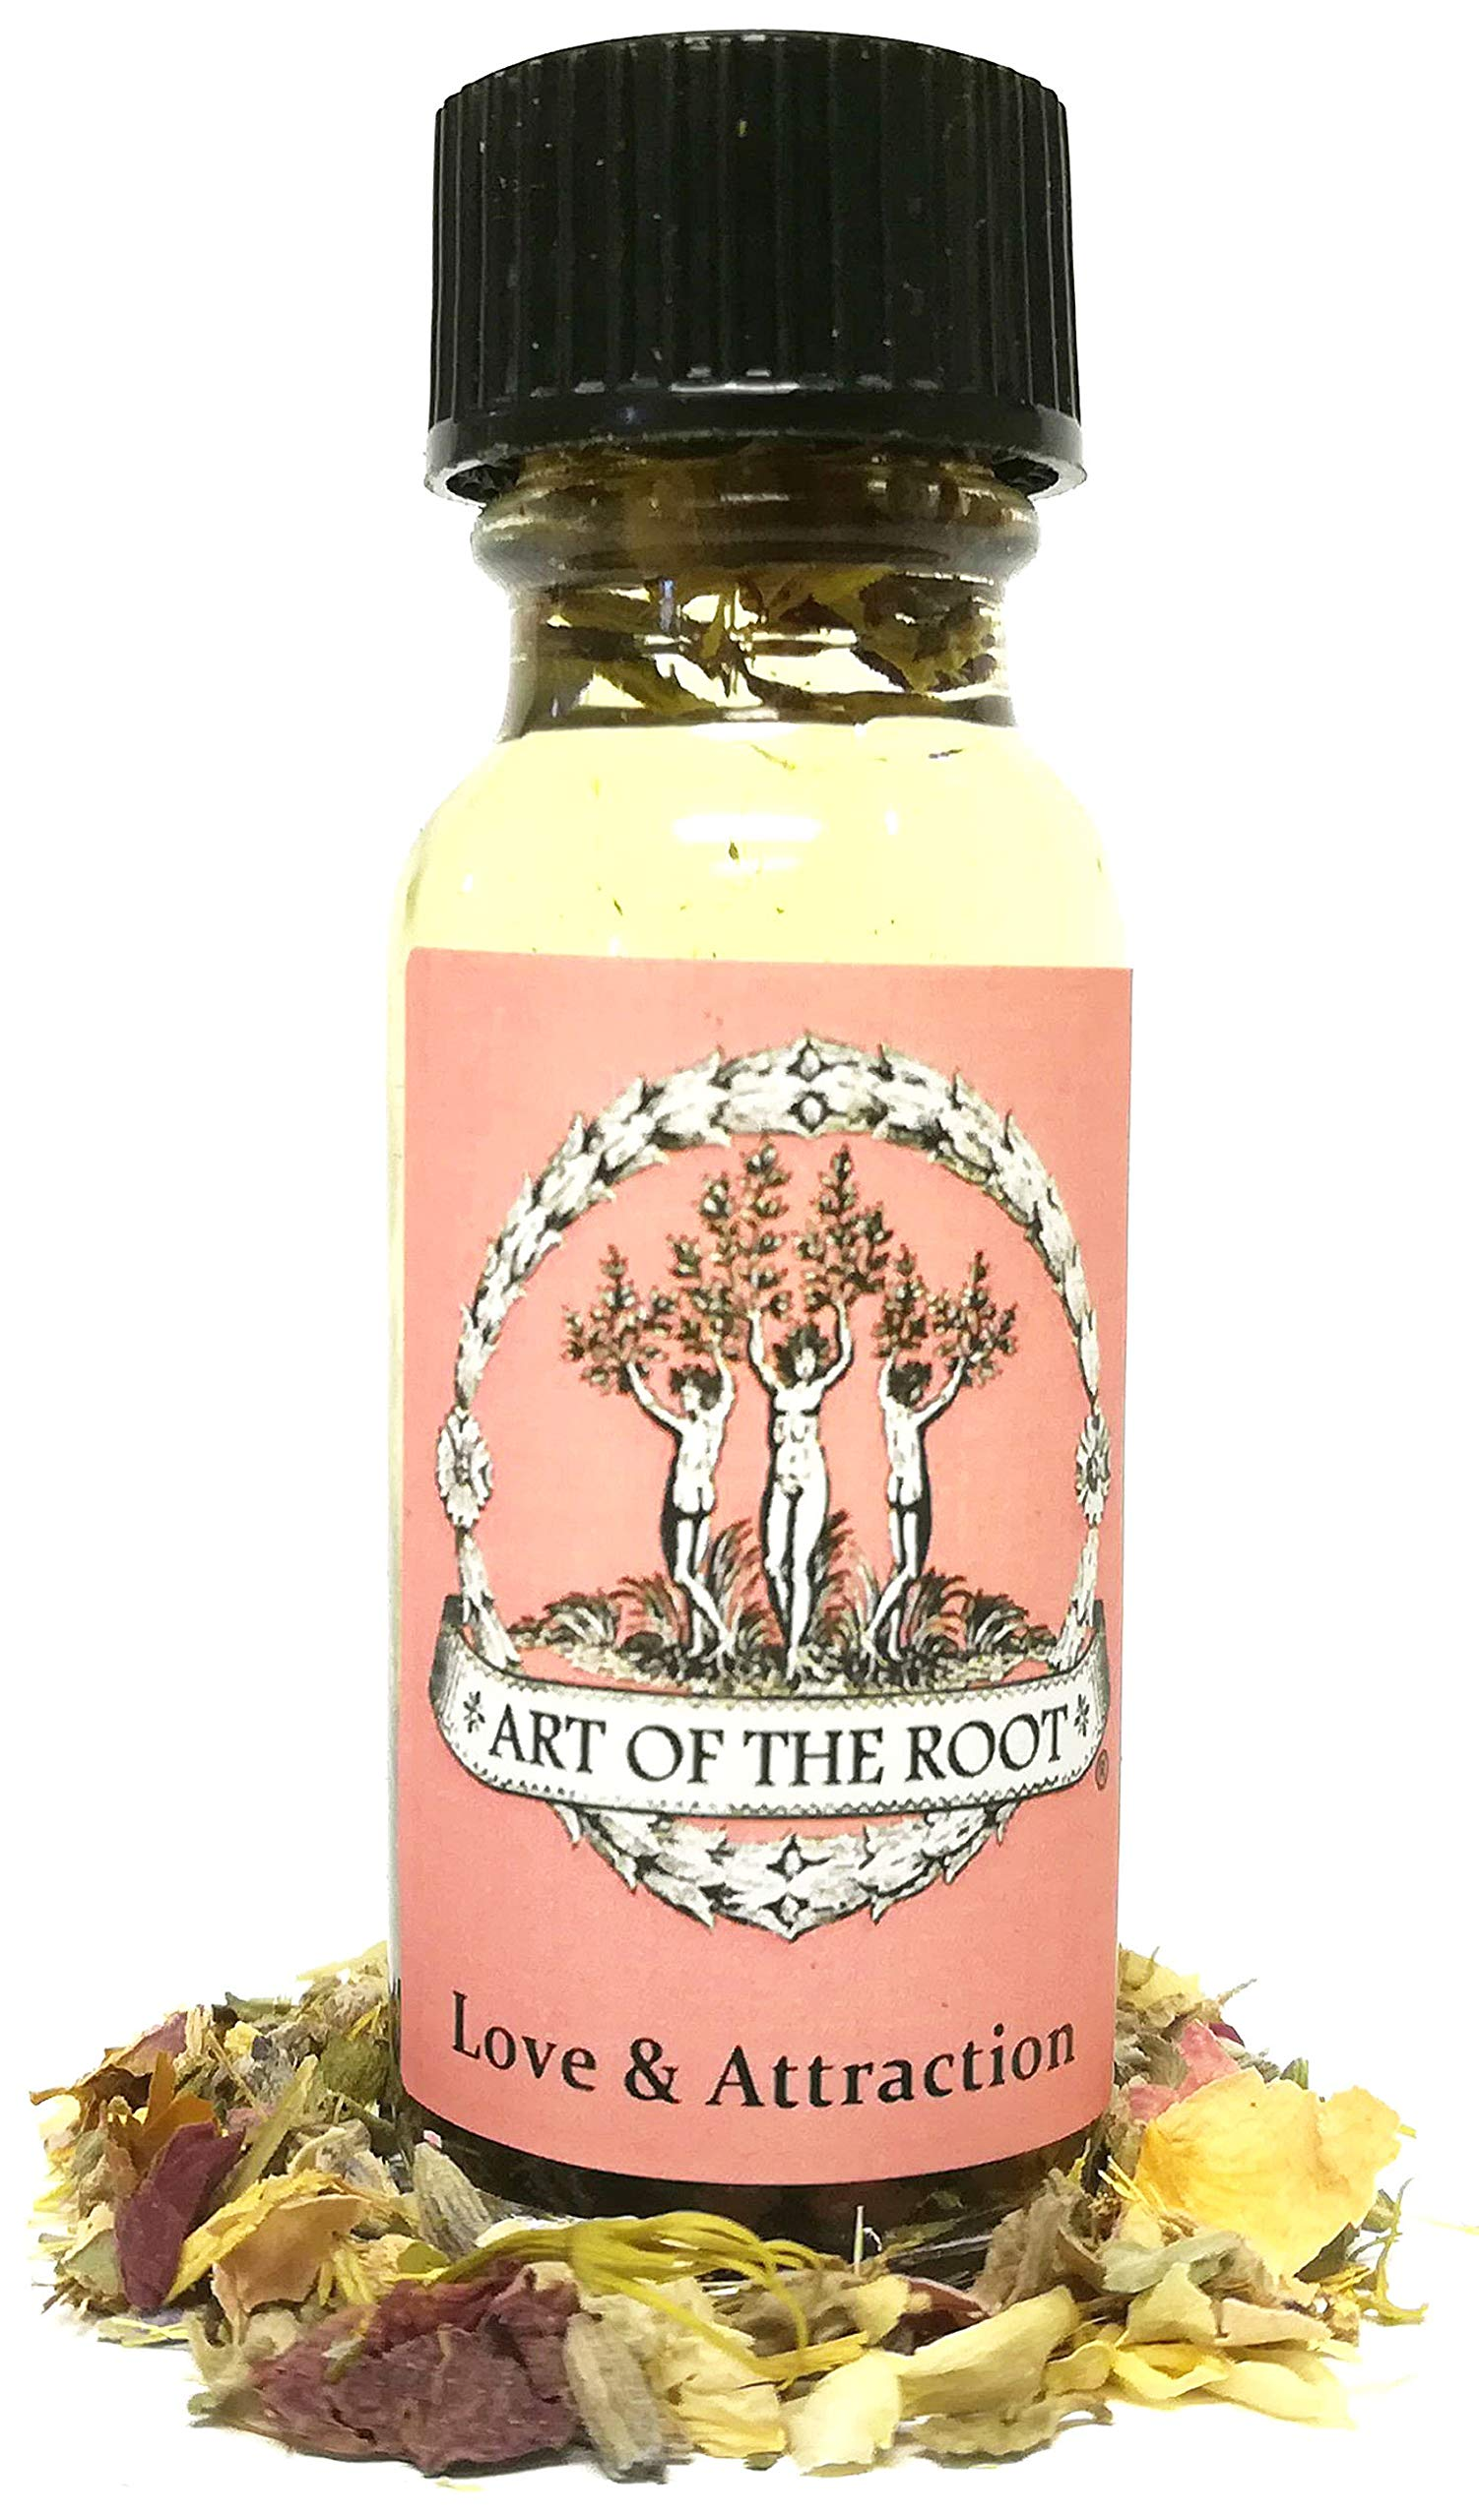 Love & Attaction Oil 1/2 oz for Romance, Commitment, Marriage & PassionHoodoo Voodoo Wicca Pagan